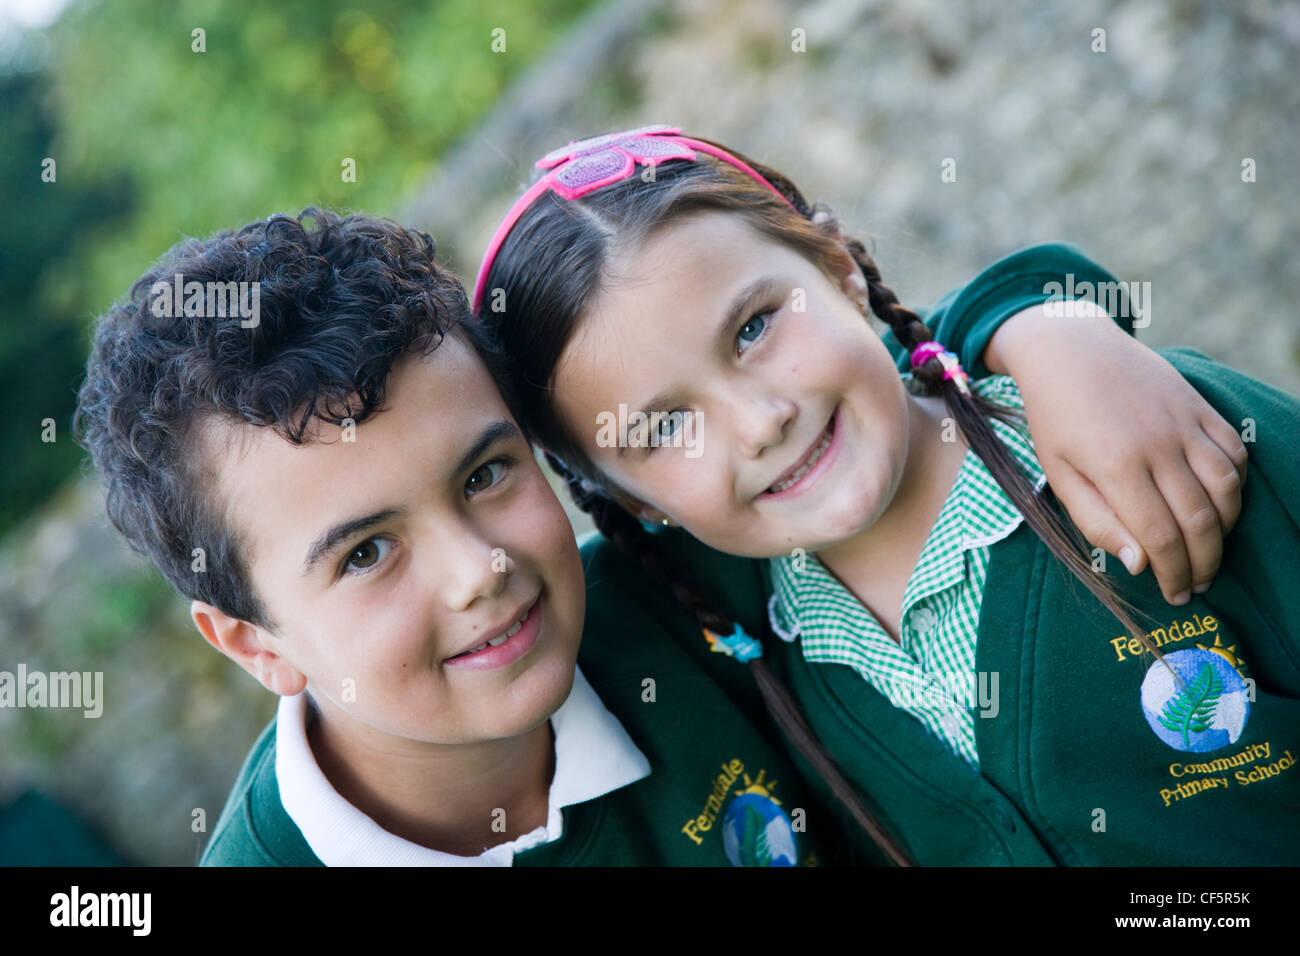 Schoolboy and schoolgirl in school uniform - Stock Image